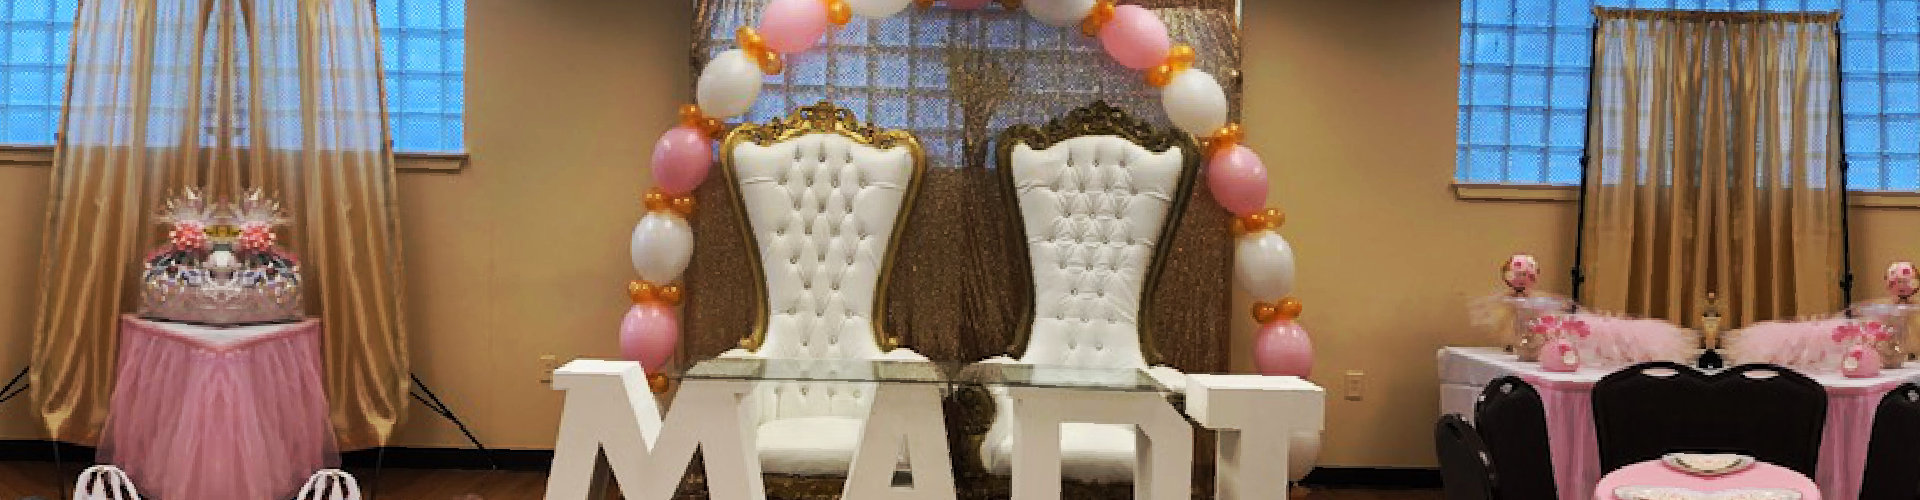 stage celebration with chair